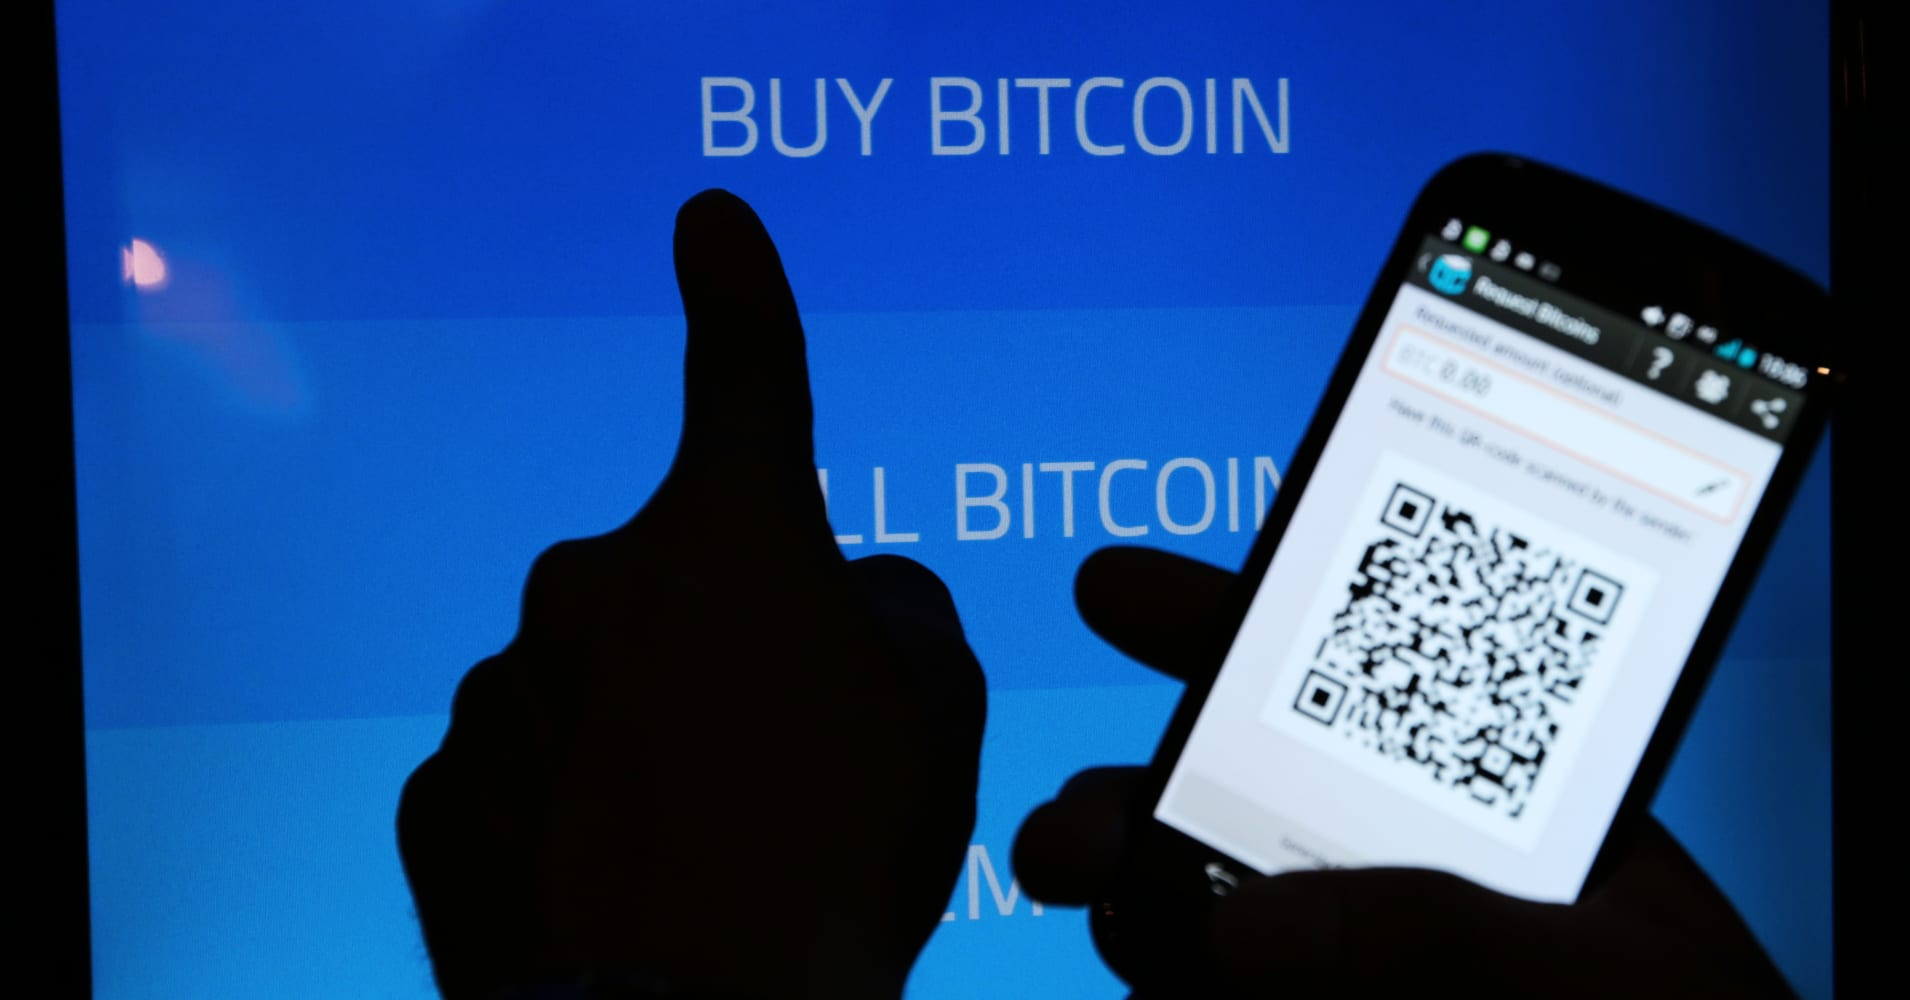 Bitcoin shrugs off rejection by US regulators